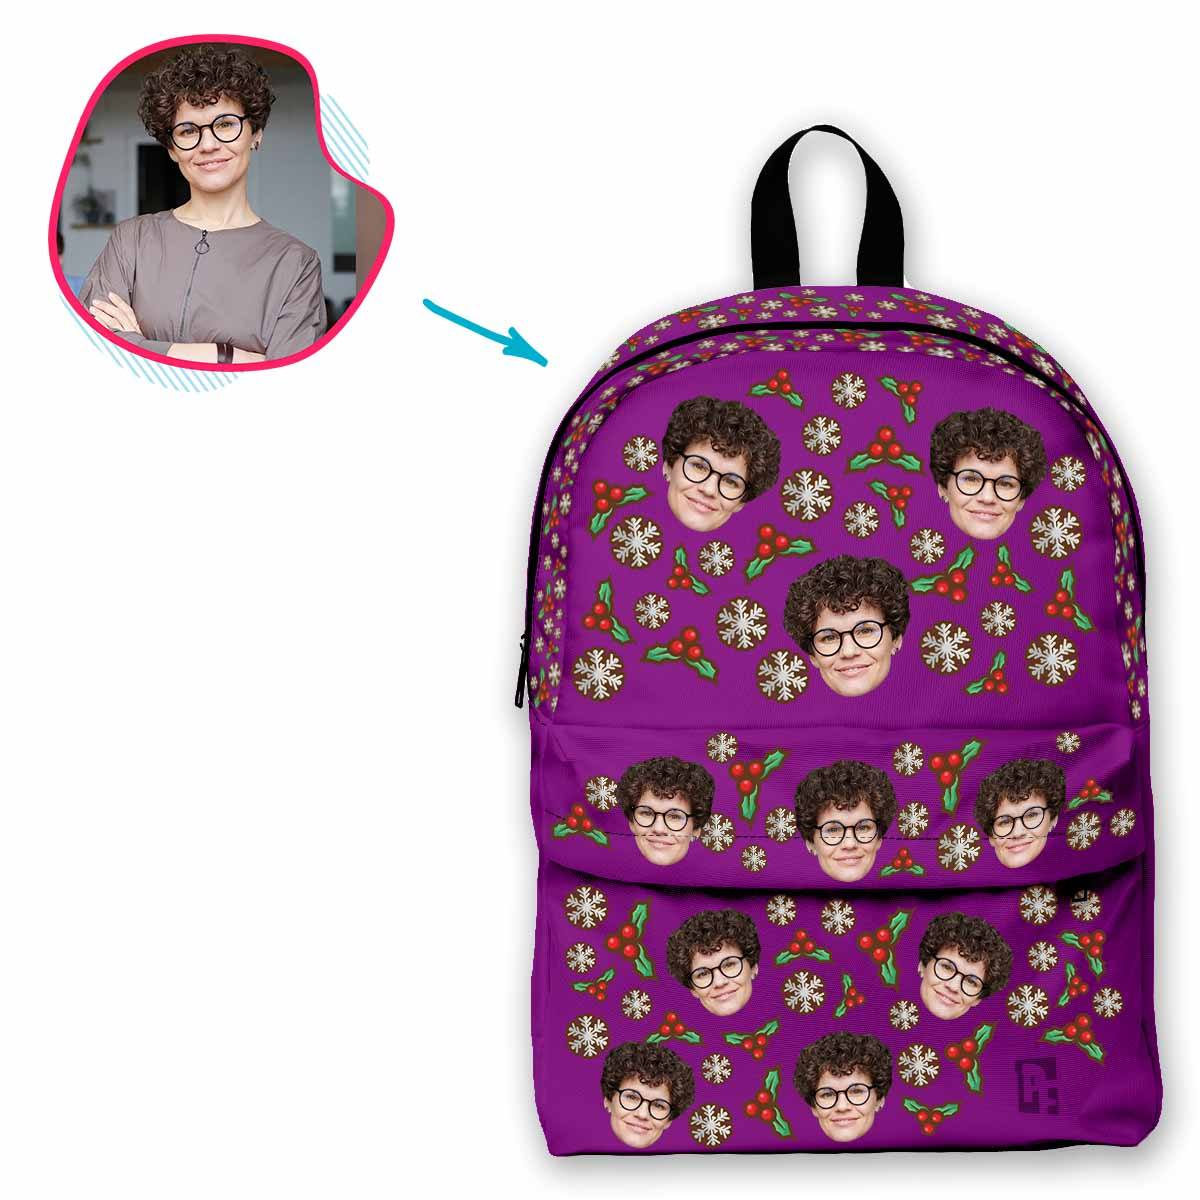 purple Mistletoe classic backpack personalized with photo of face printed on it